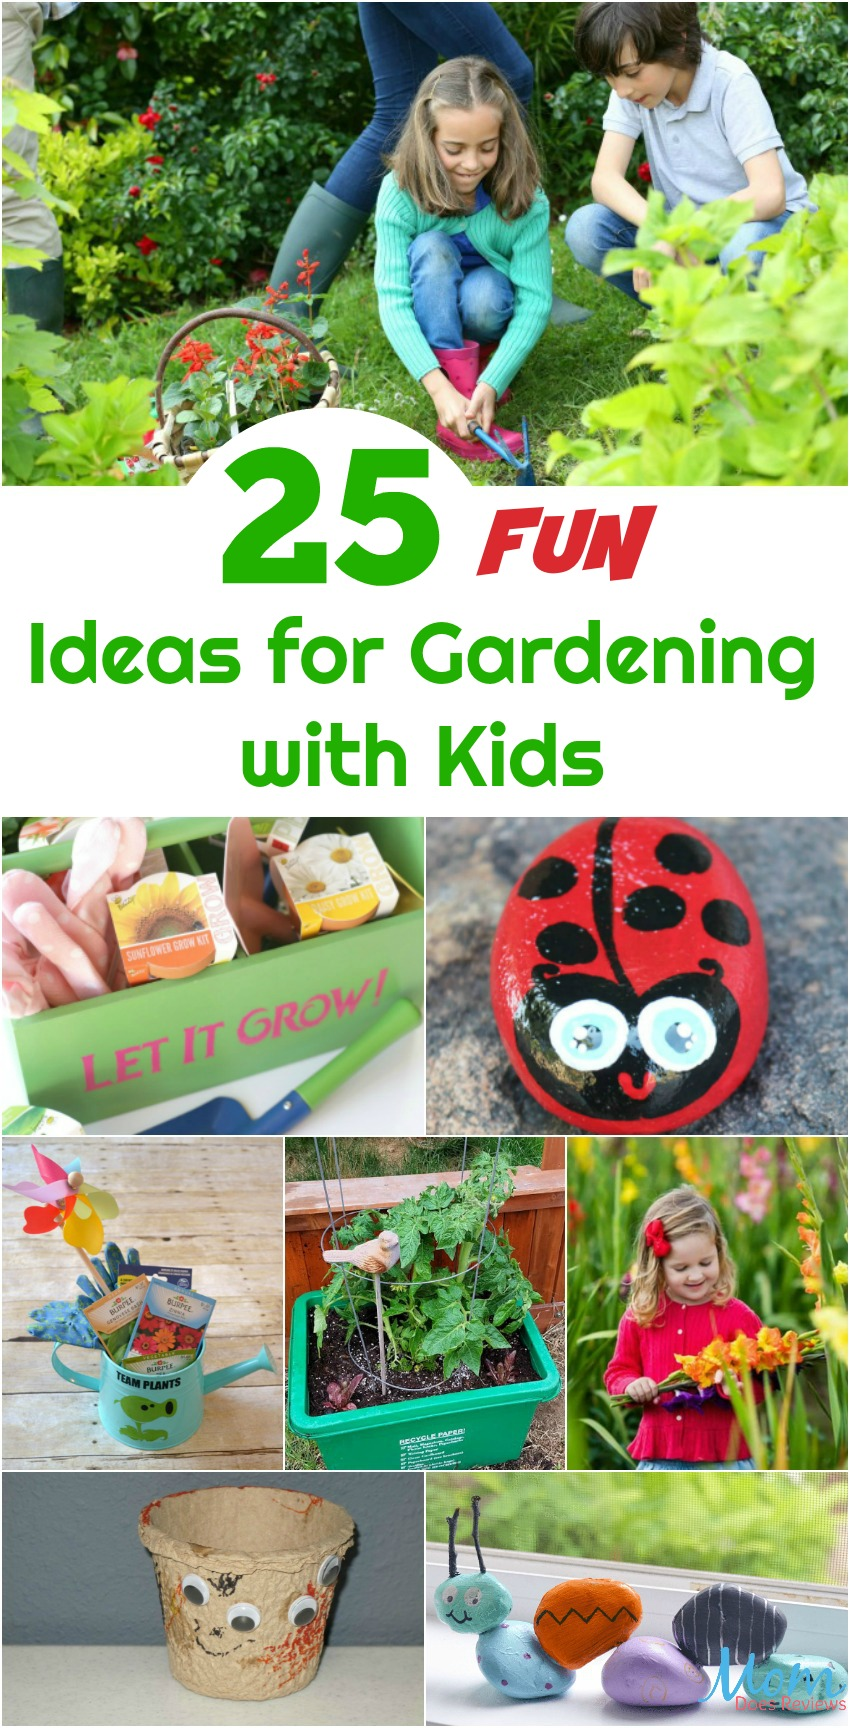 25 Fun Gardening with Kids Ideas to Spark Their Interest #gardening #diy #parenting #STEM #science #education